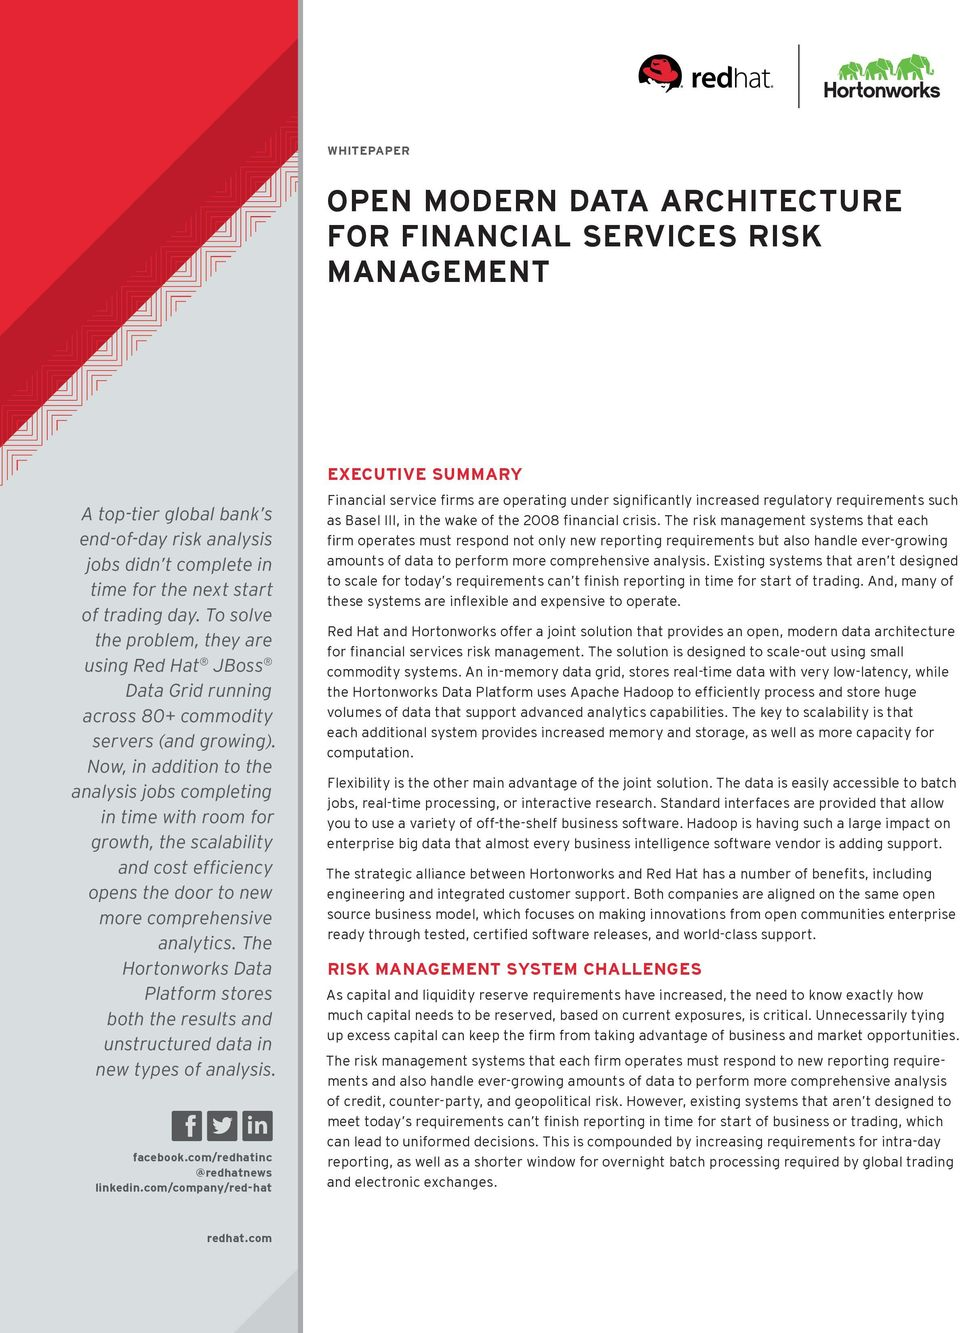 OPEN MODERN DATA ARCHITECTURE FOR FINANCIAL SERVICES RISK